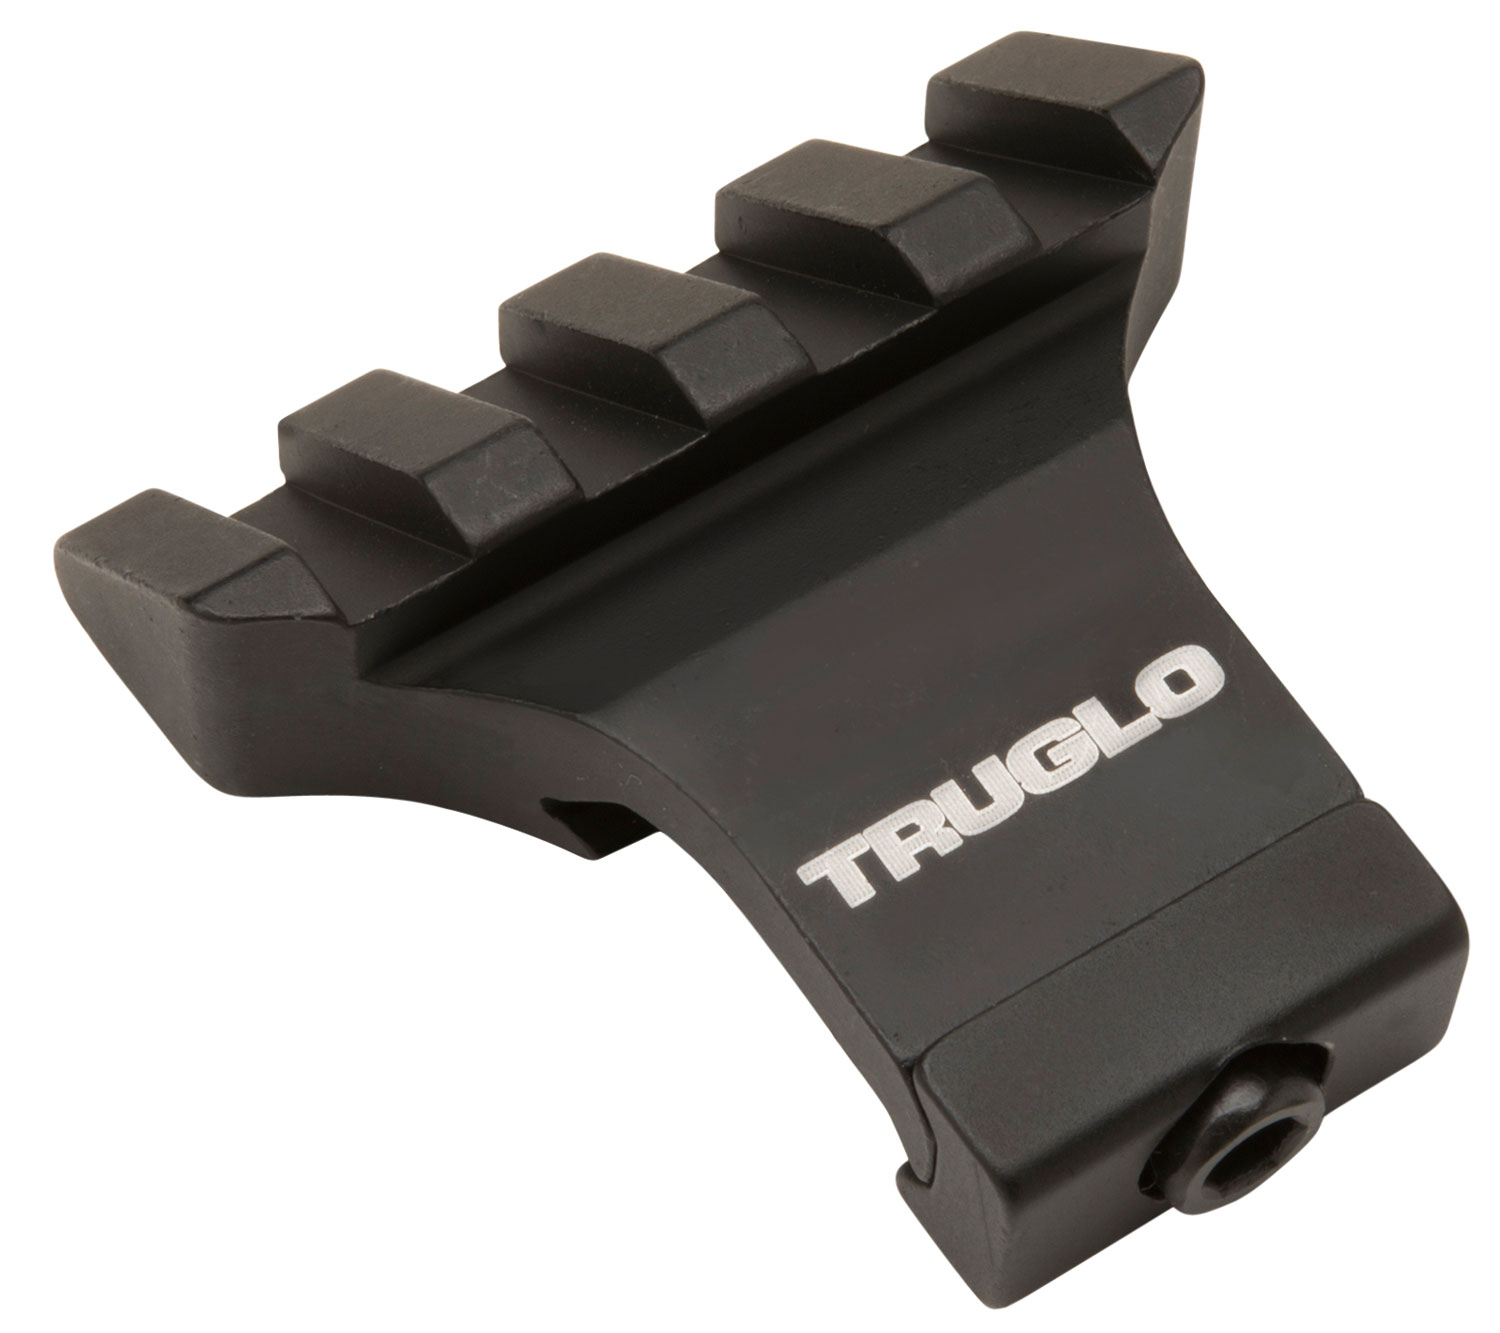 Truglo TG8975B Offset Picatinny Side Mount Rail Black Matte Anodized Finish